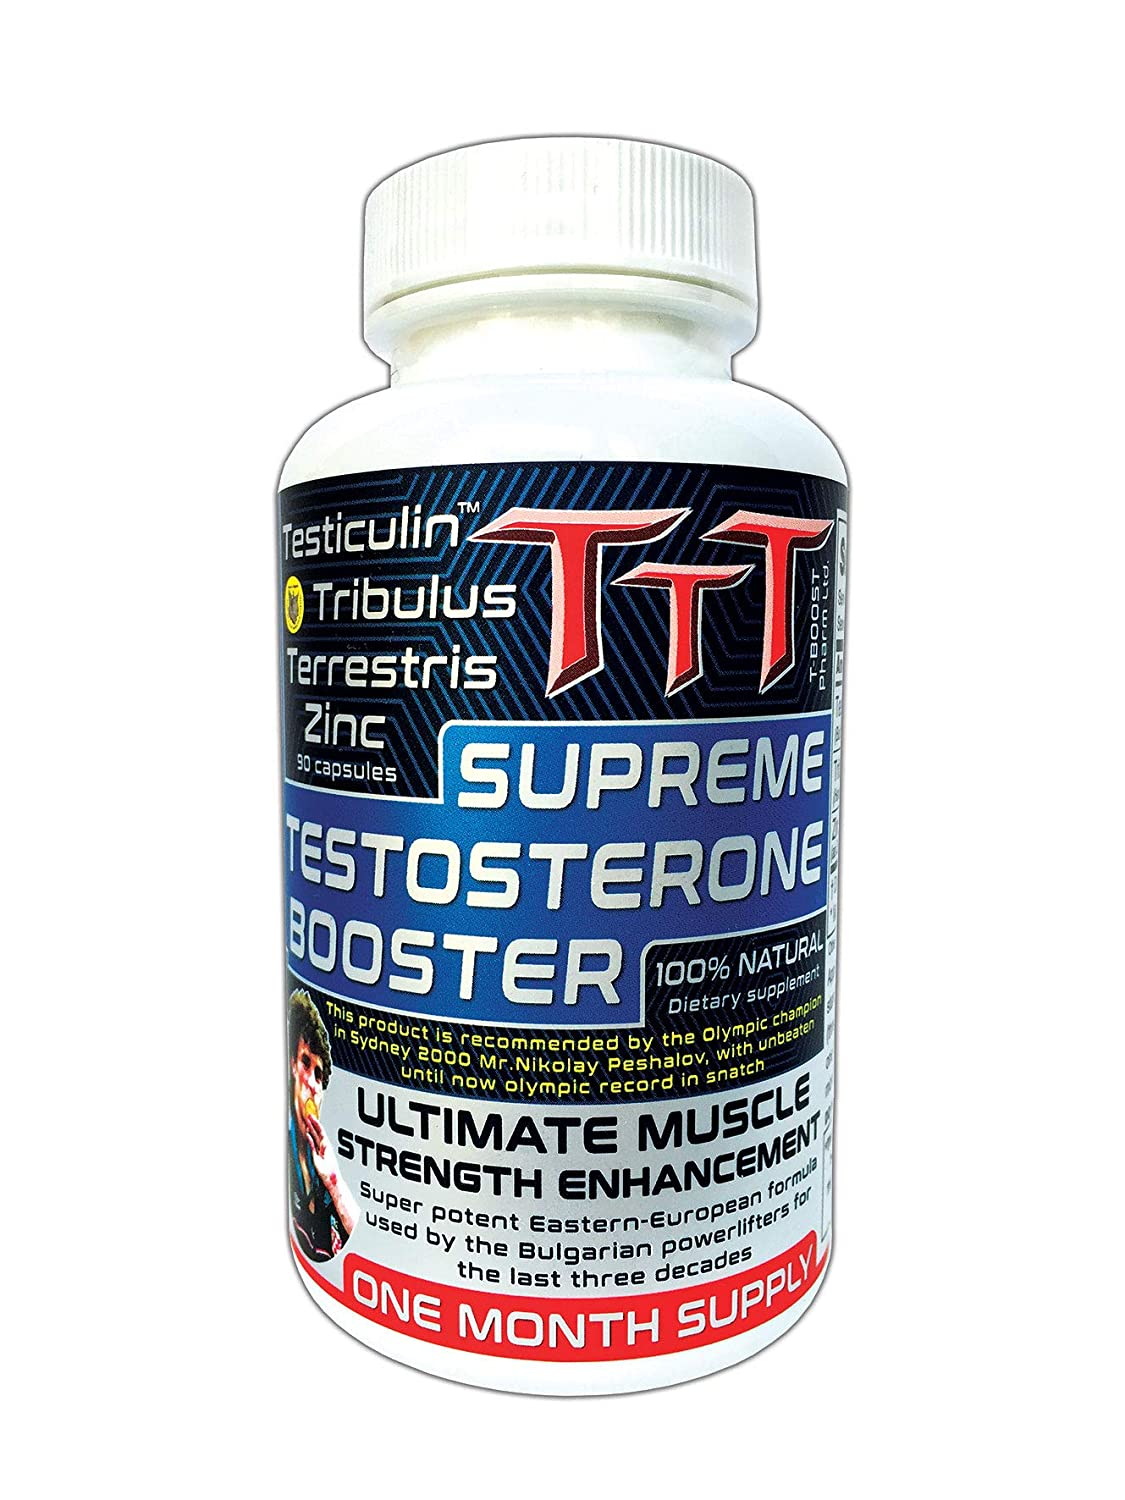 TTT- The Best Alternative Of The Anabolic Steroids  Supreme Testosterone  Booster  Contains Unique Ingredient